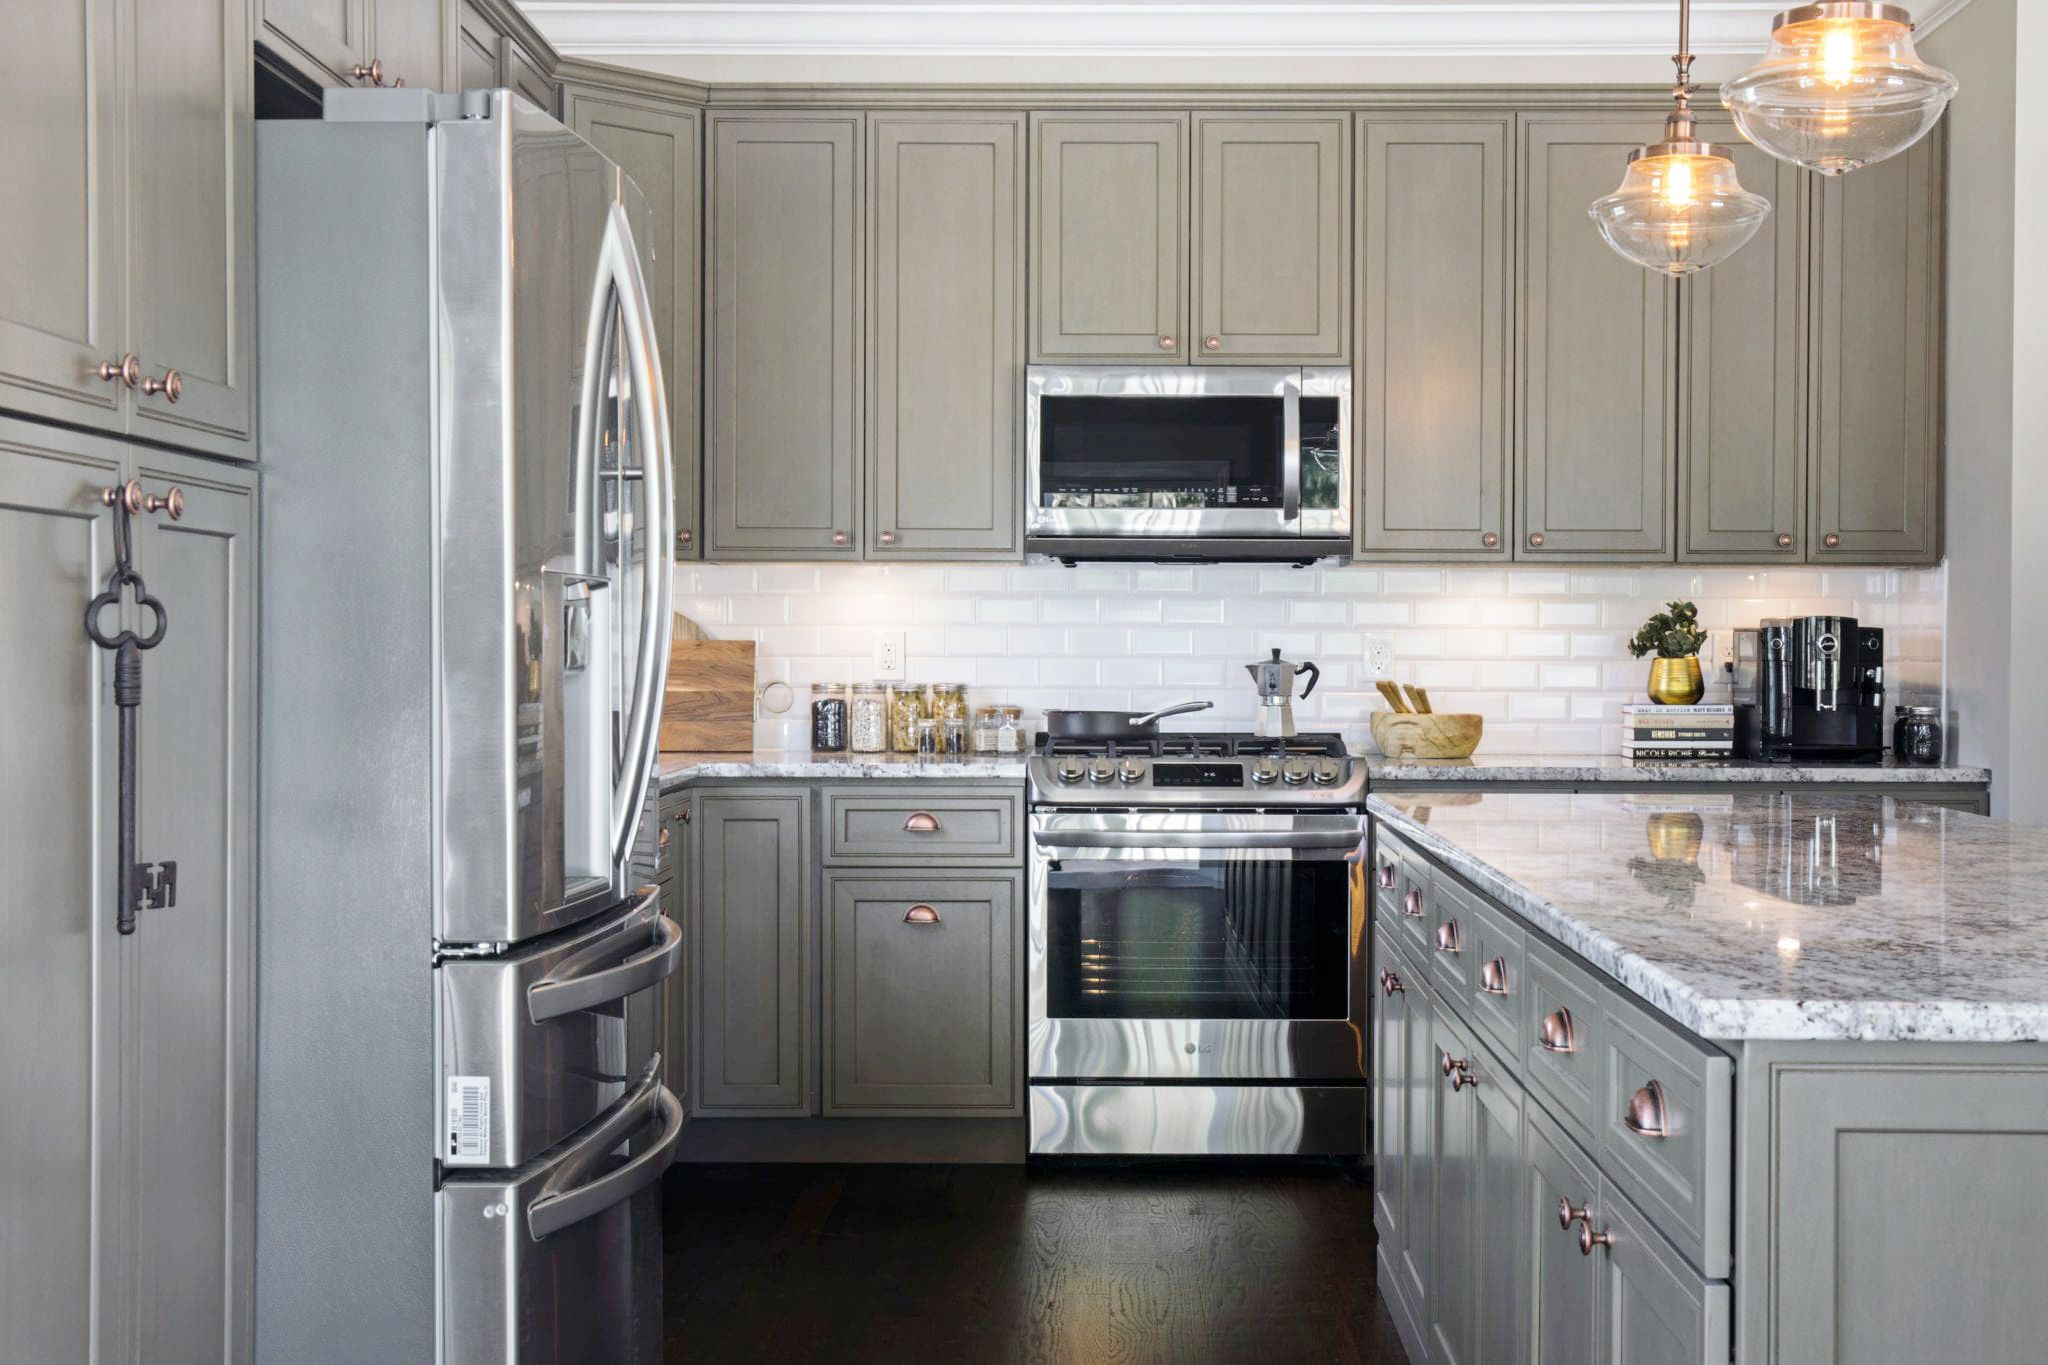 hazel maple maple kitchen cabinets maple kitchen kitchen cabinets on j kitchen id=73349